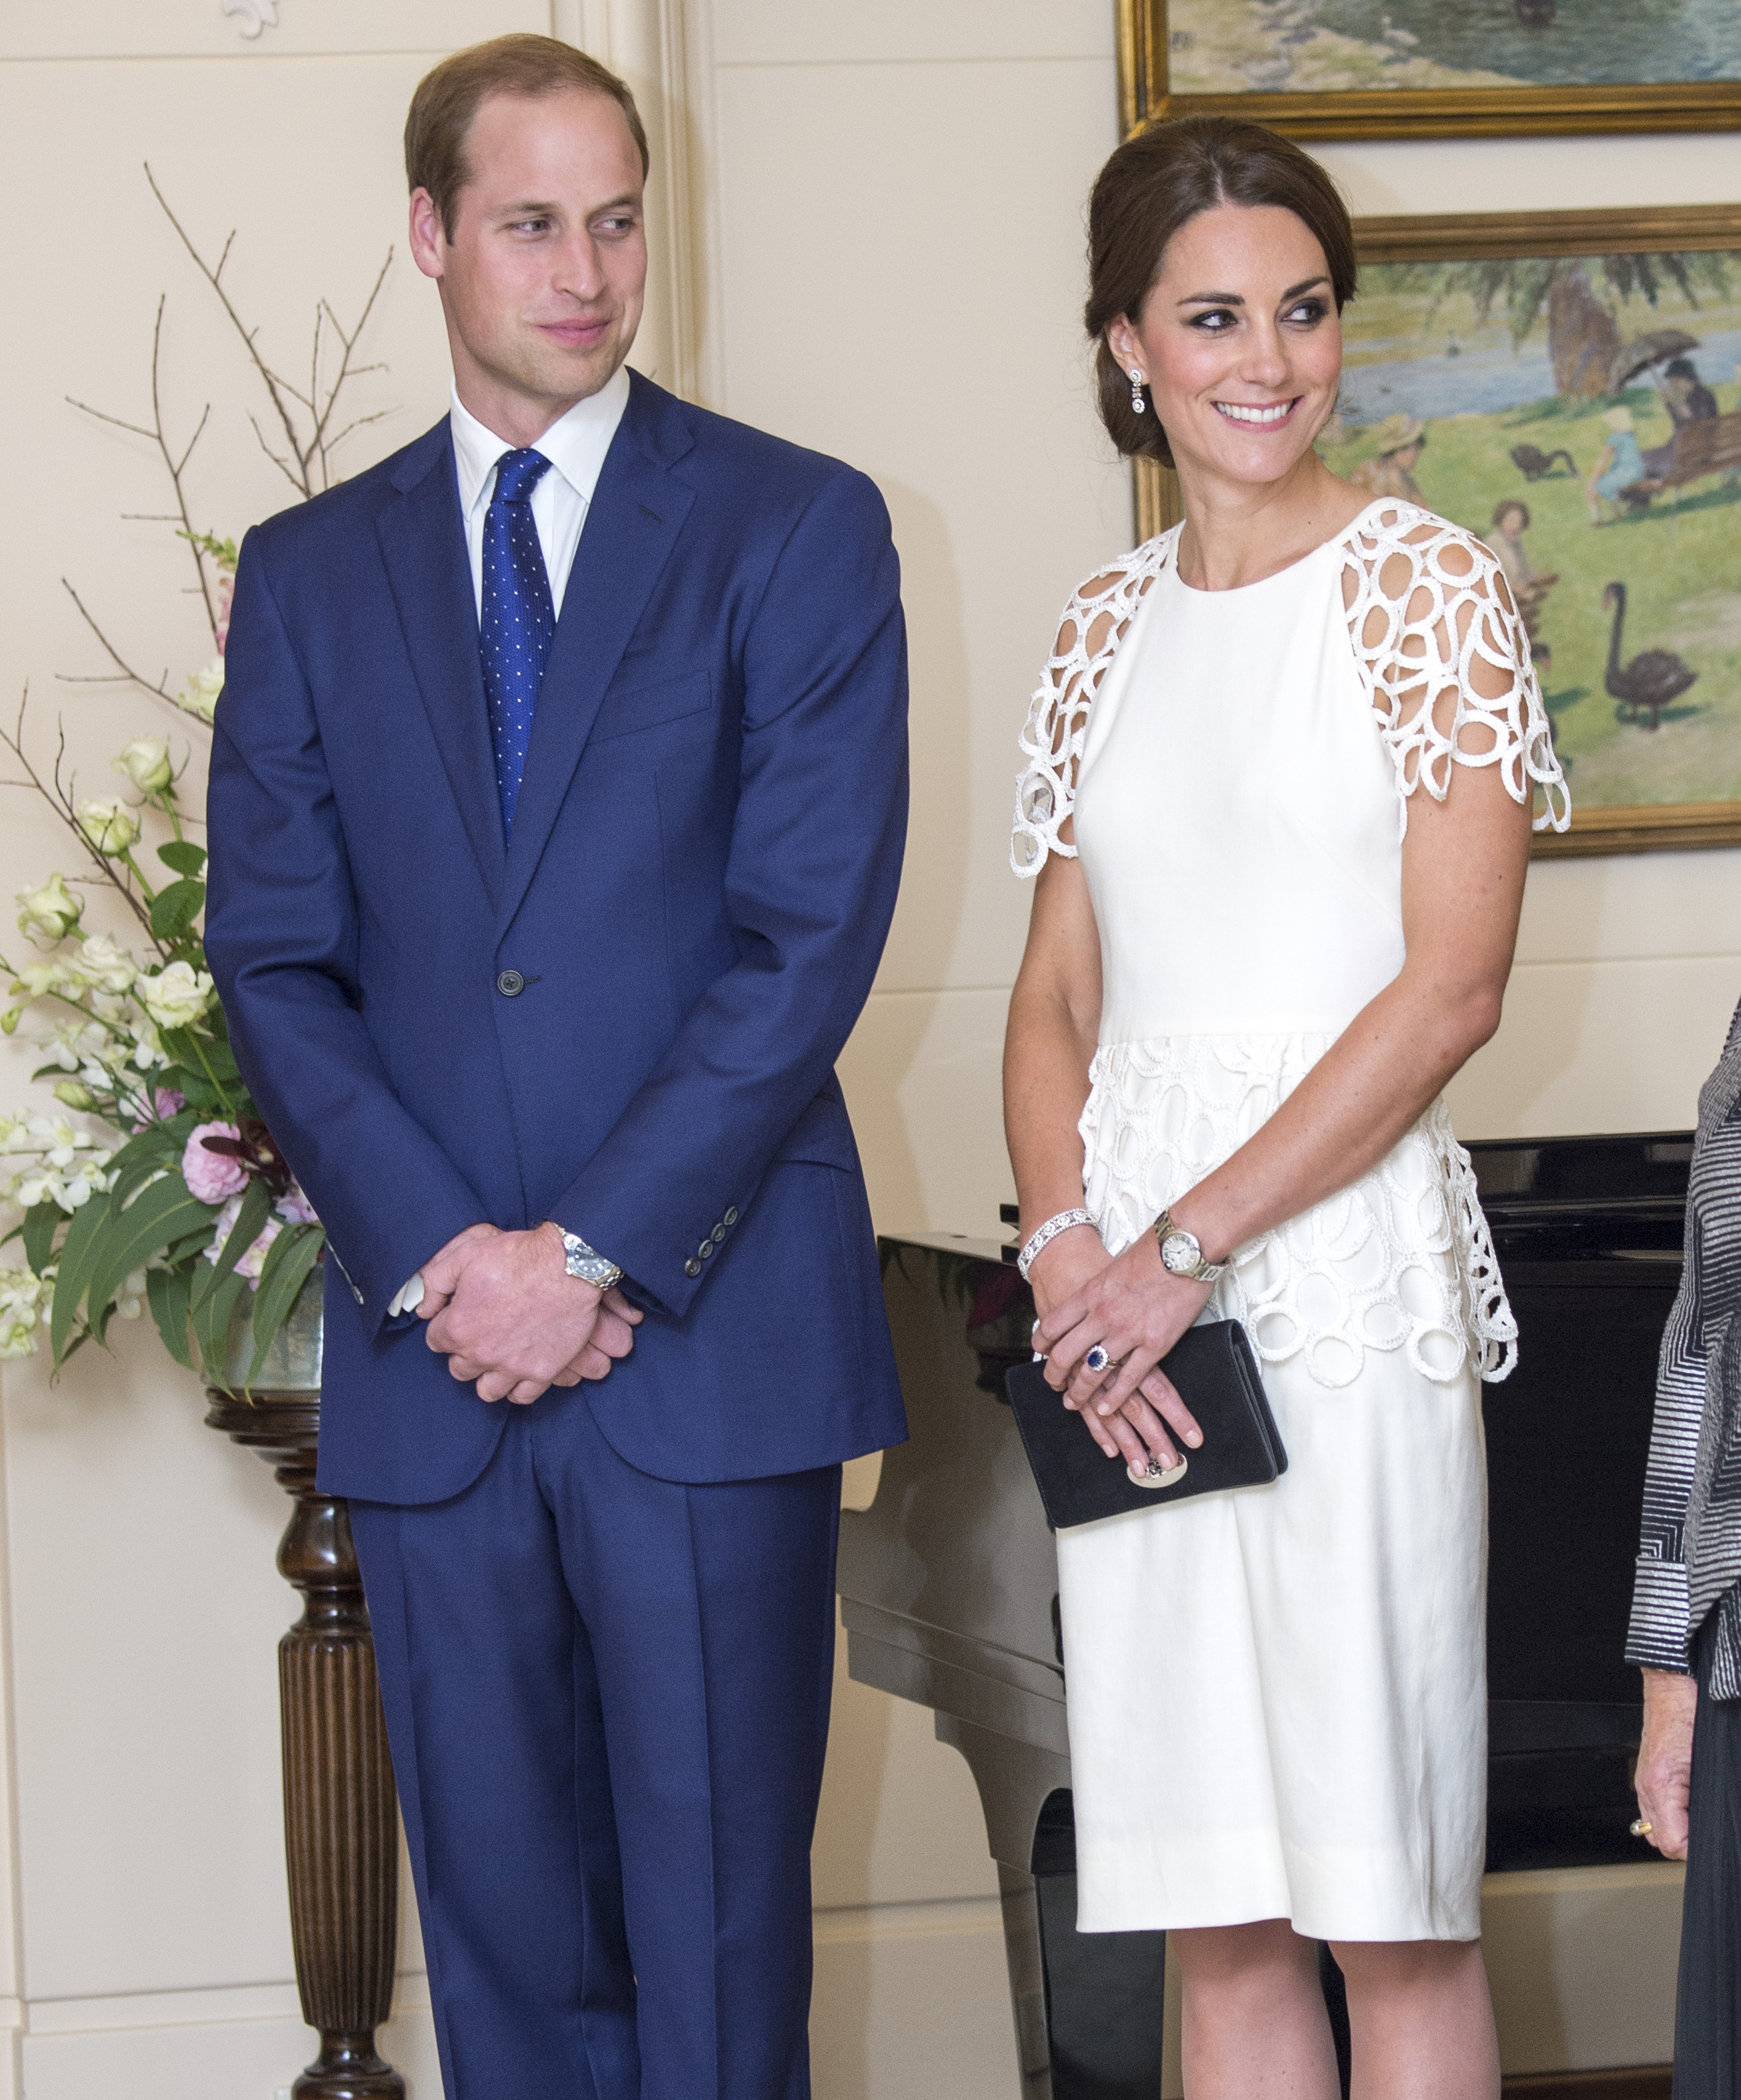 <strong>Royal Reception</strong>                                   From left: The Duke and Duchess of Cambridge during a reception at Government House in Canberra on April 24, 2014.